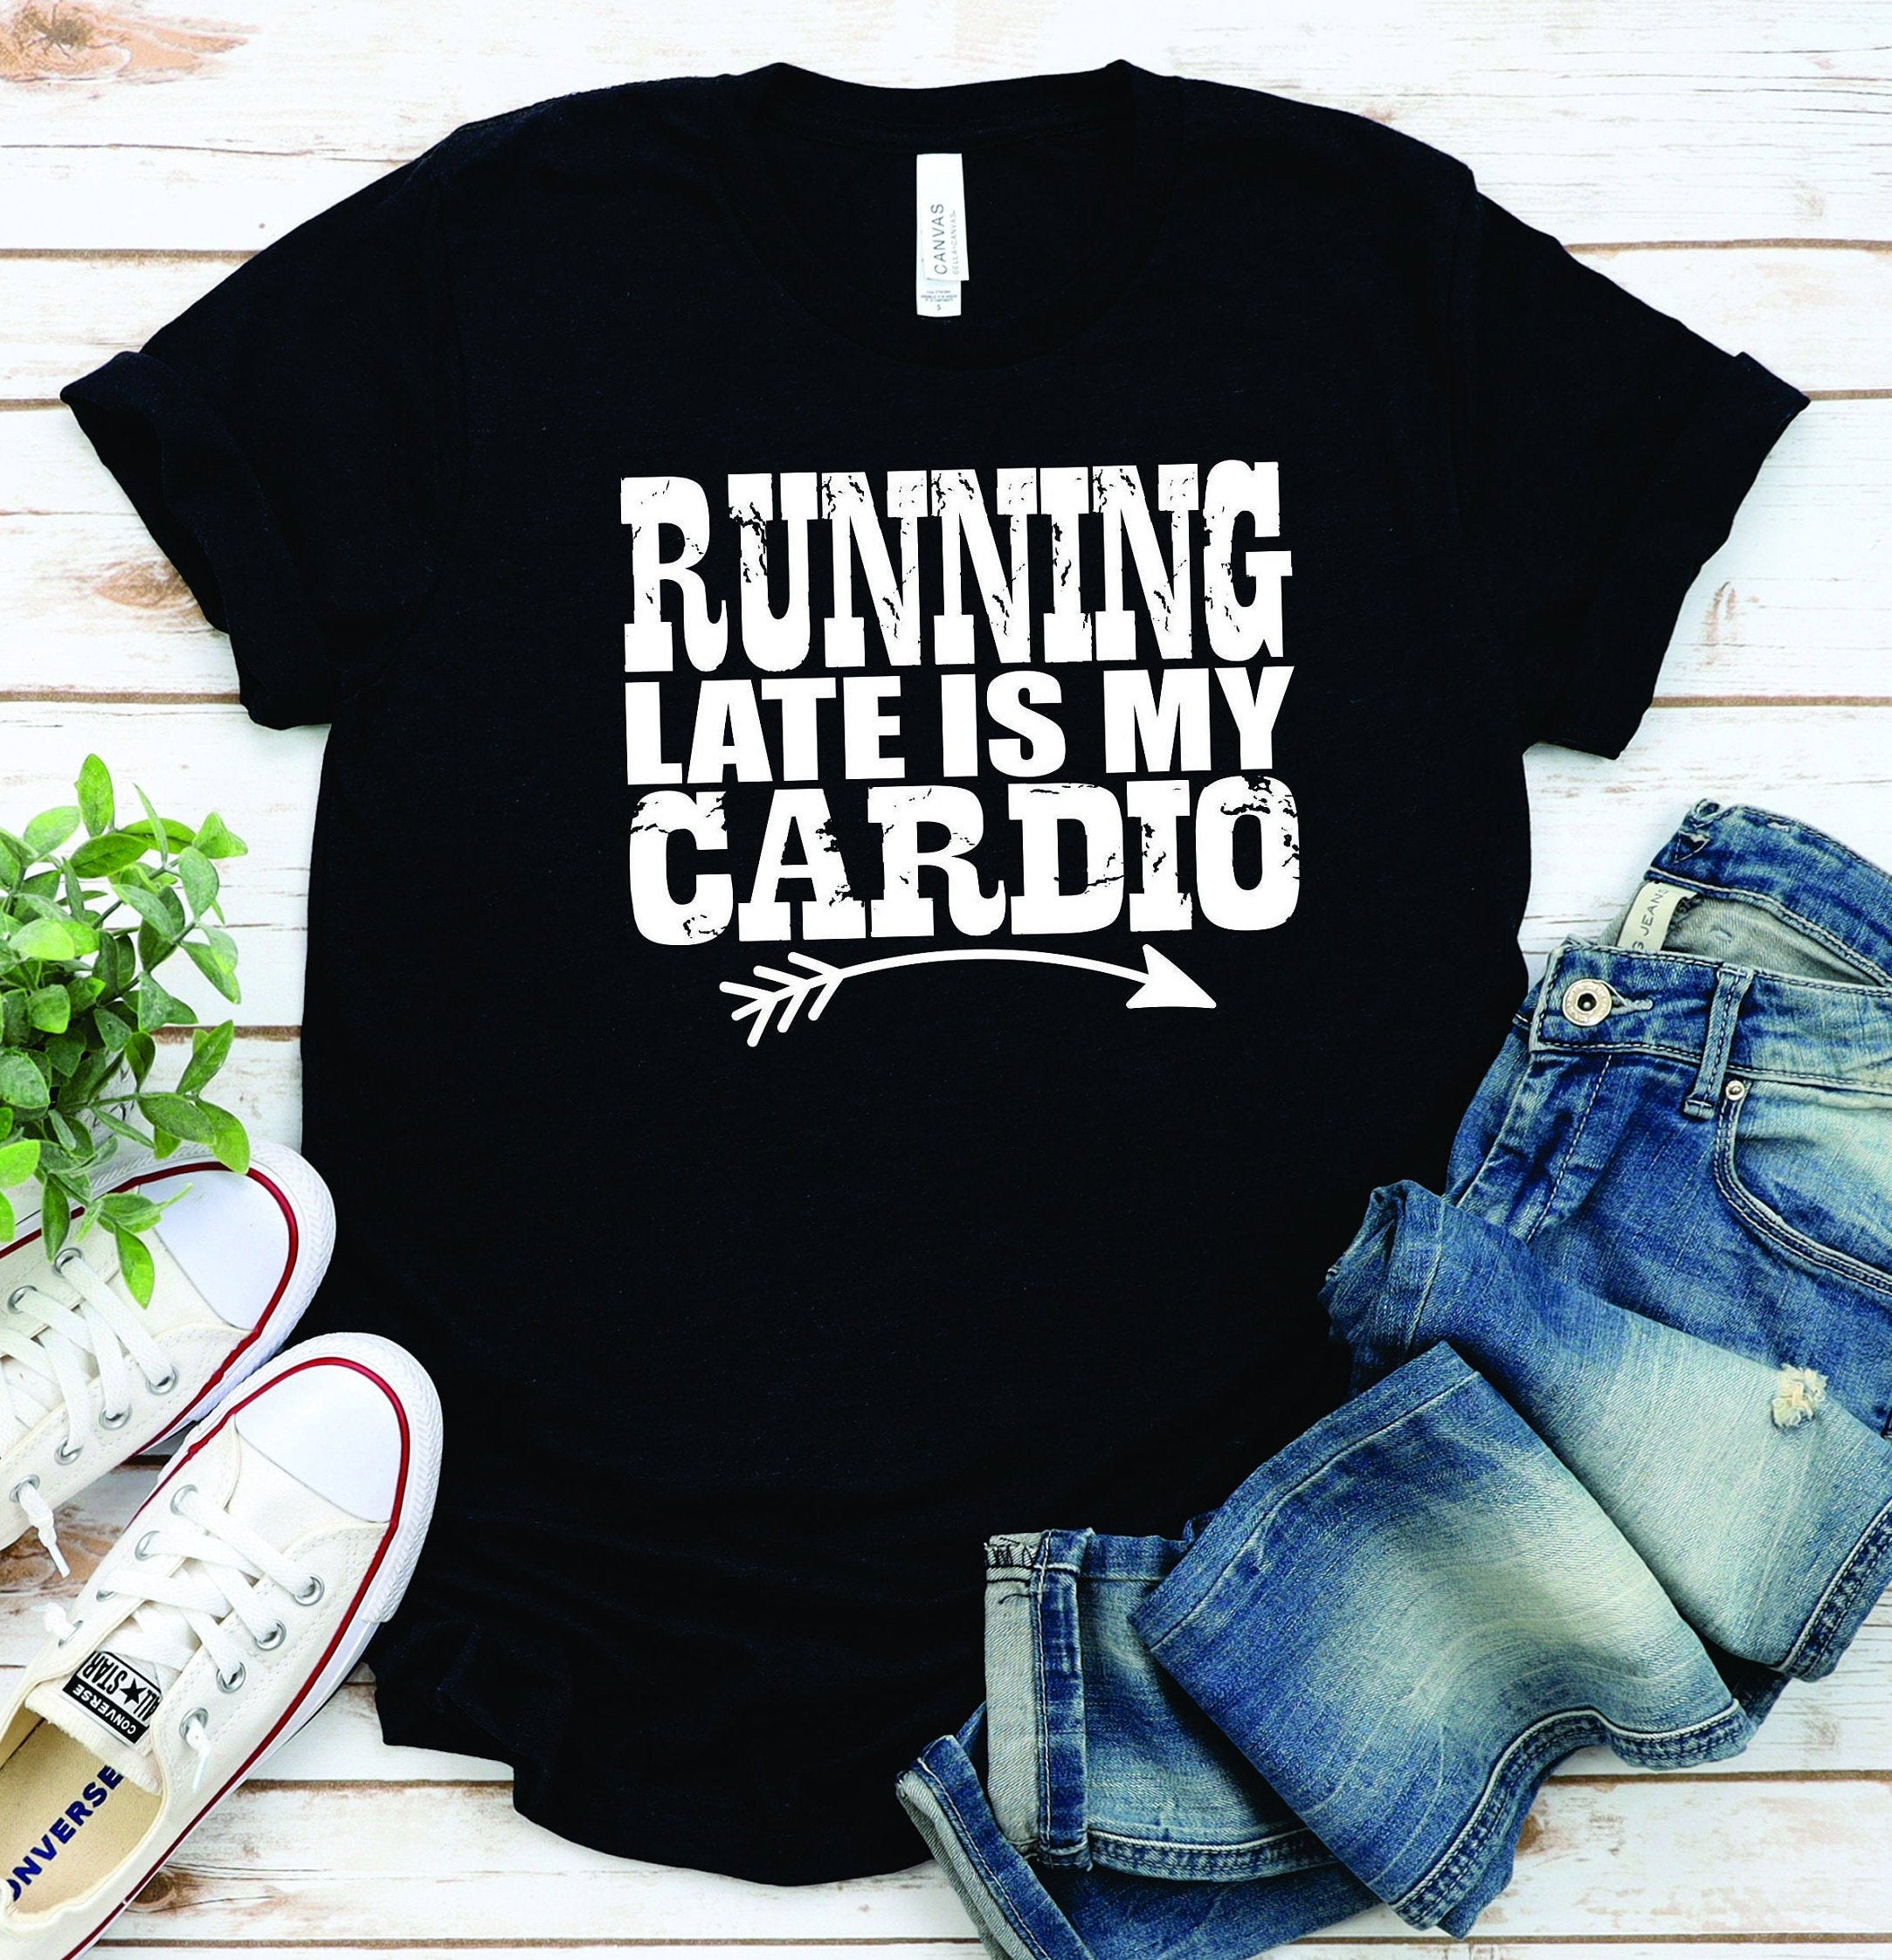 Running-late-is-my-cardio-svg-mothers-day-svg-girl-mom-svg-boy-mom-svg-mom-quote-svg-motherhood-svg-mothers-day-svg-design-cricut-60514a55